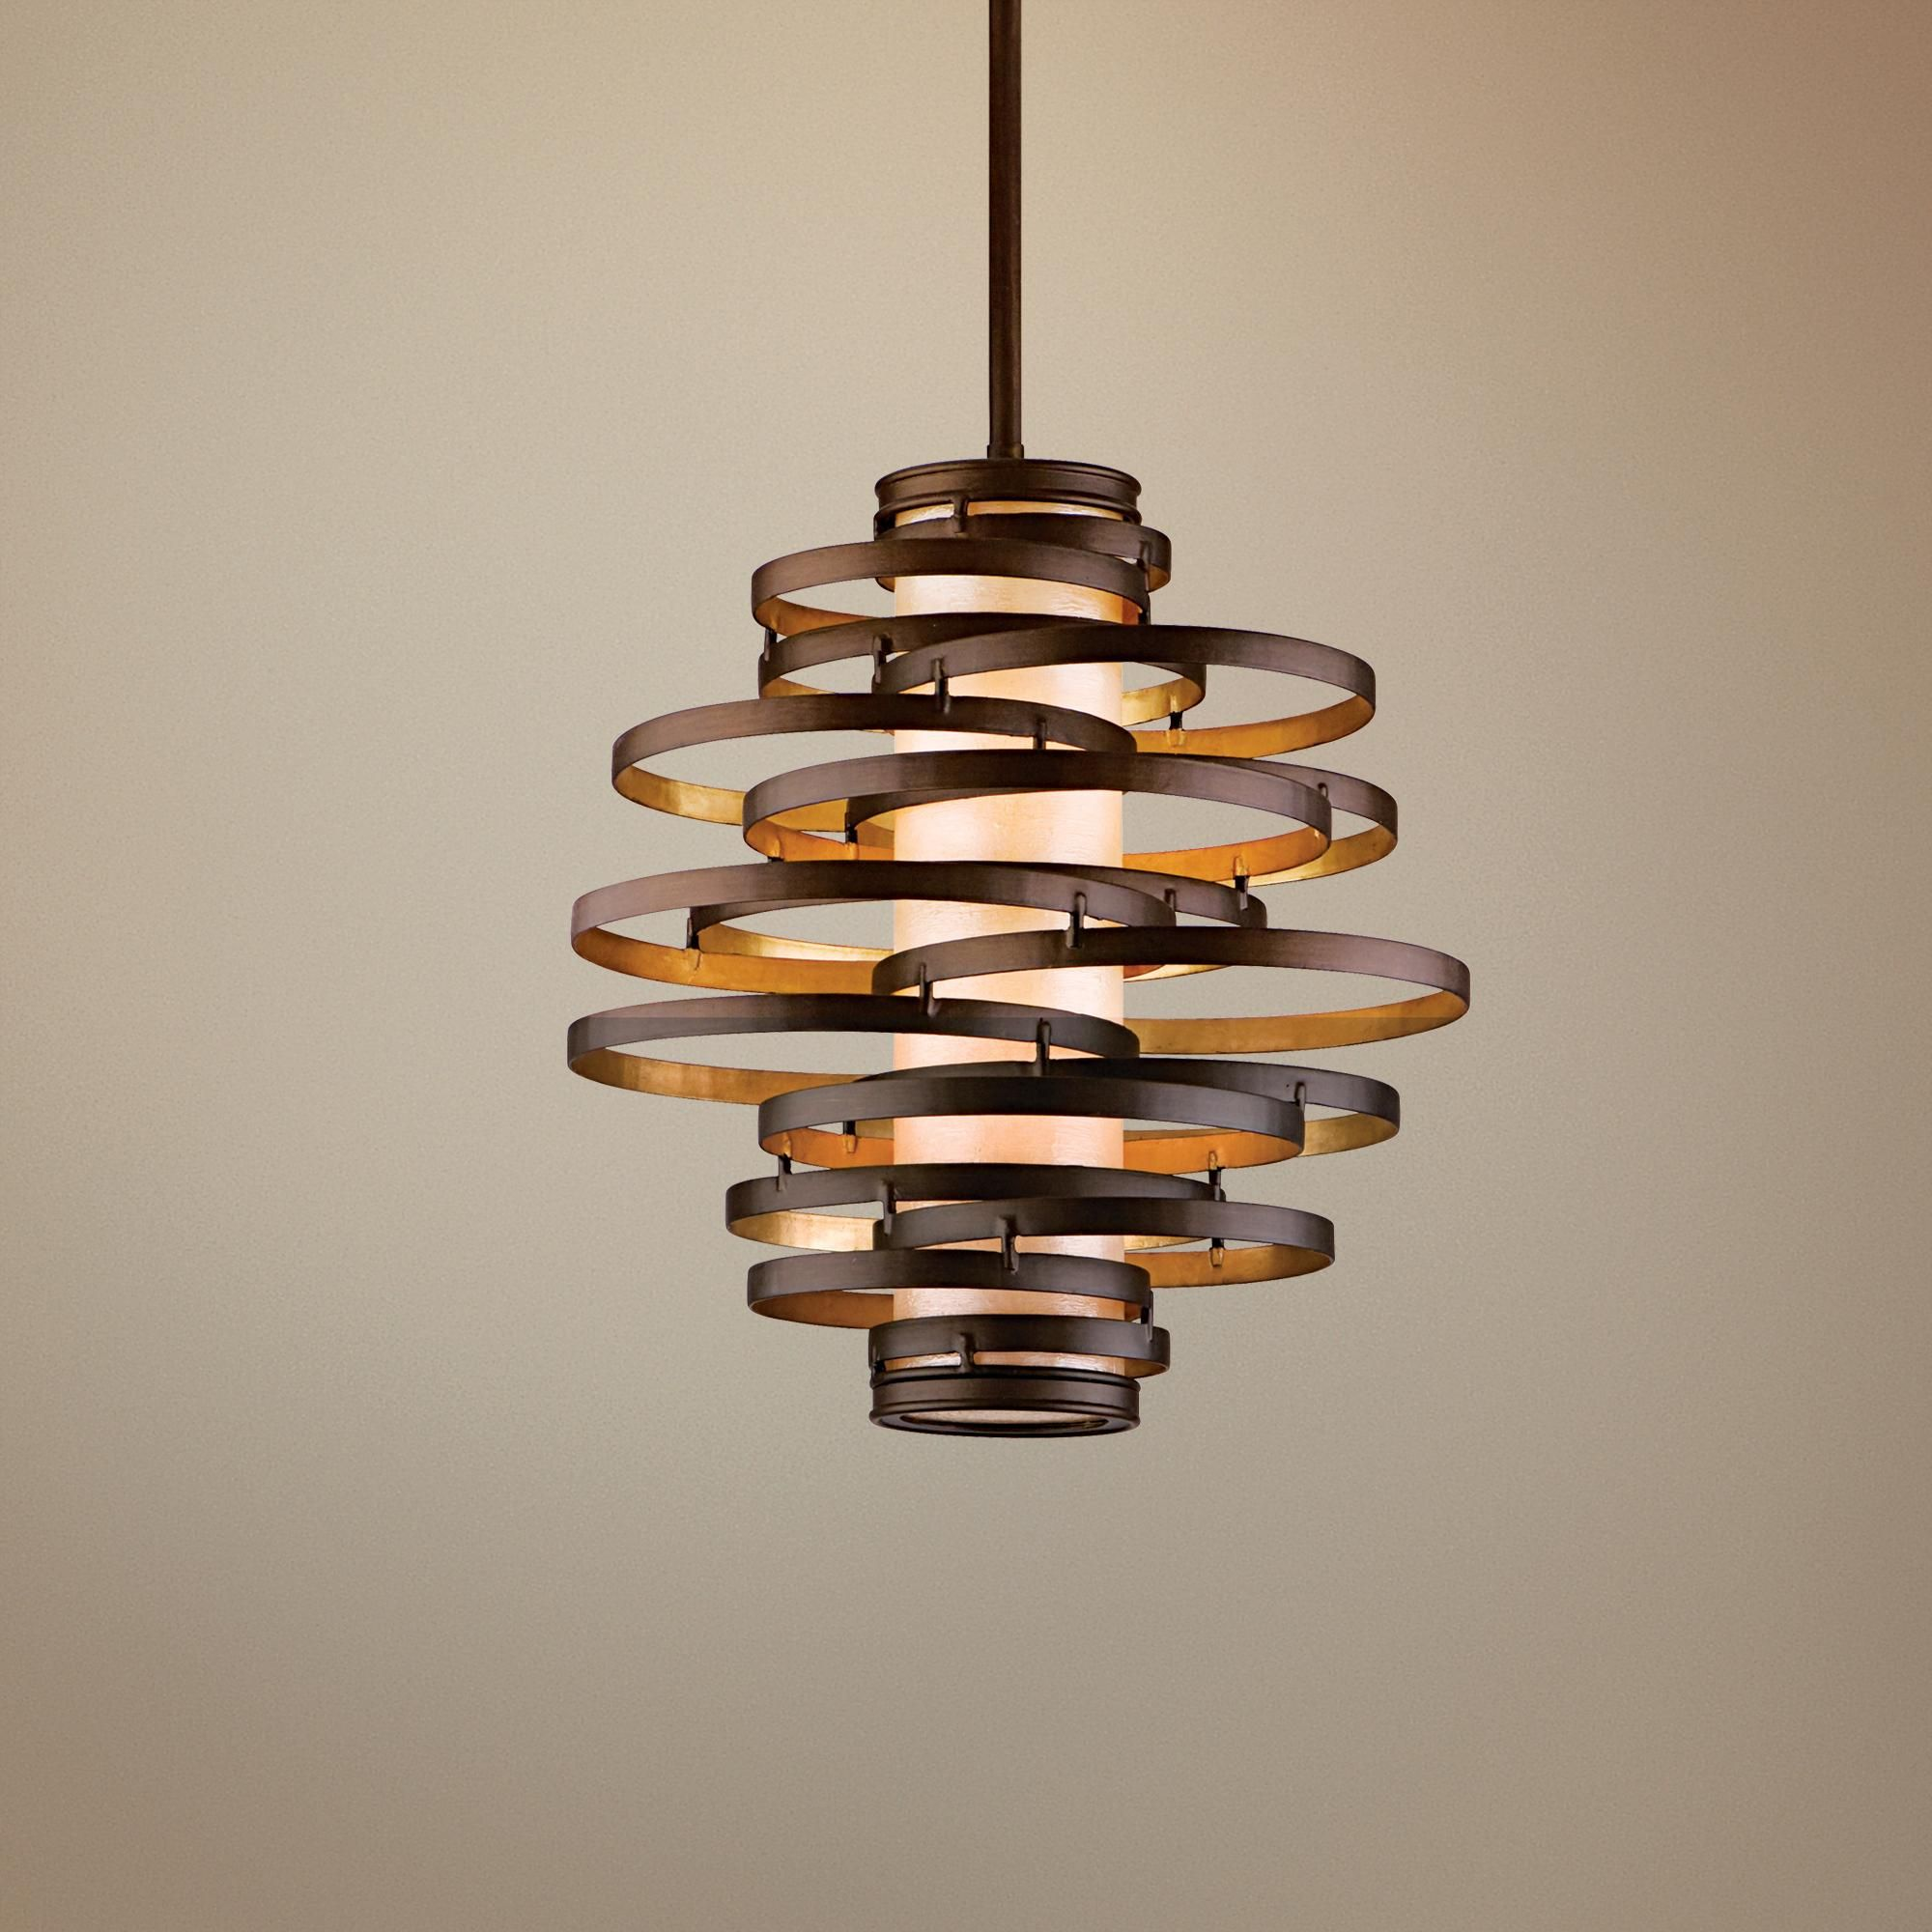 of lights lighting awesome home the fresh vertigo corbett best pendant medium light divineducation com